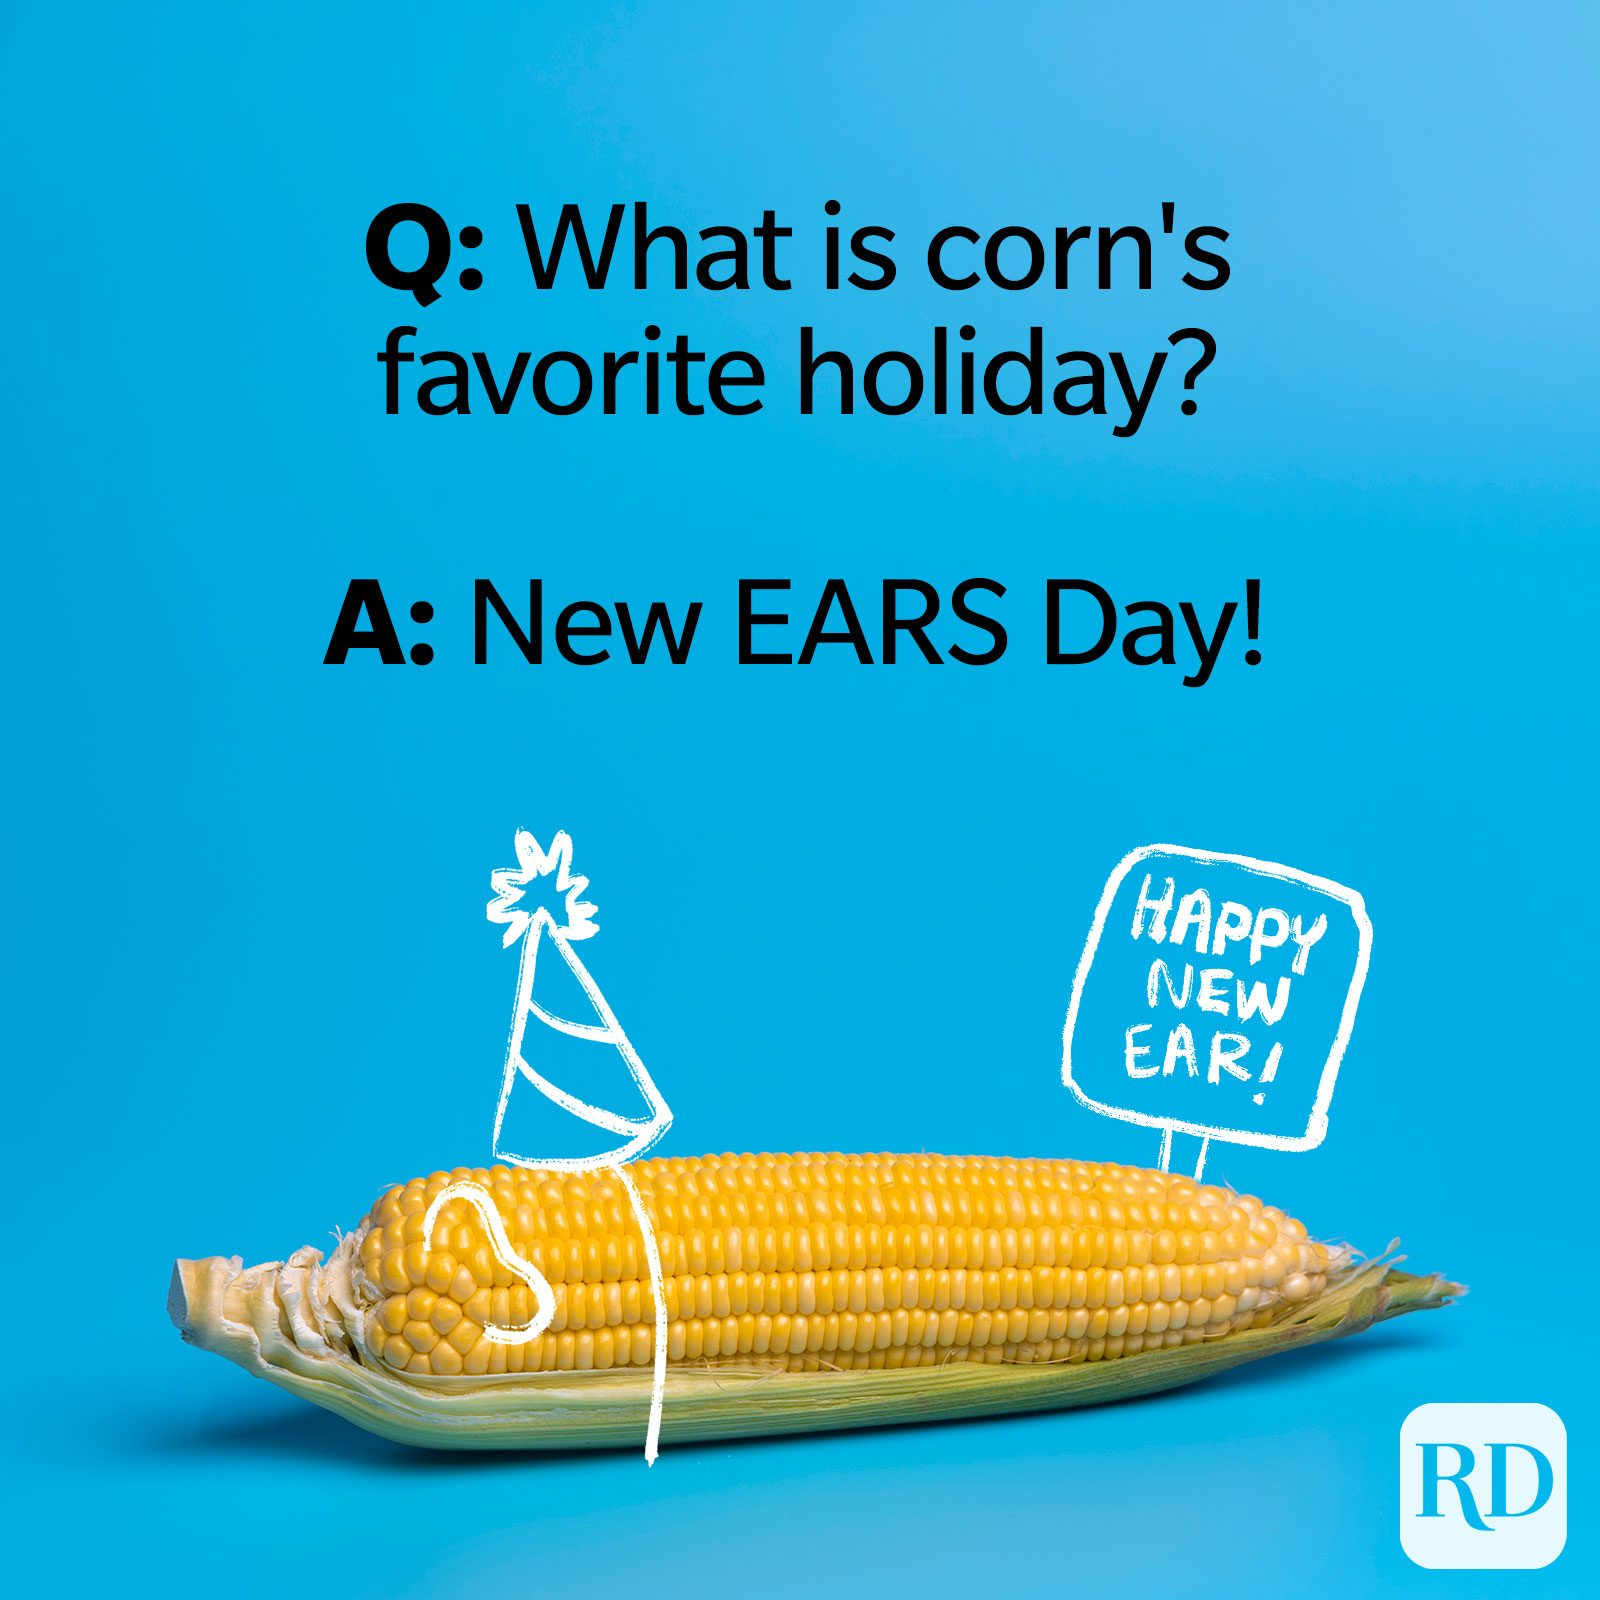 Q: What is corn's favorite holiday? A: New EARS Day!